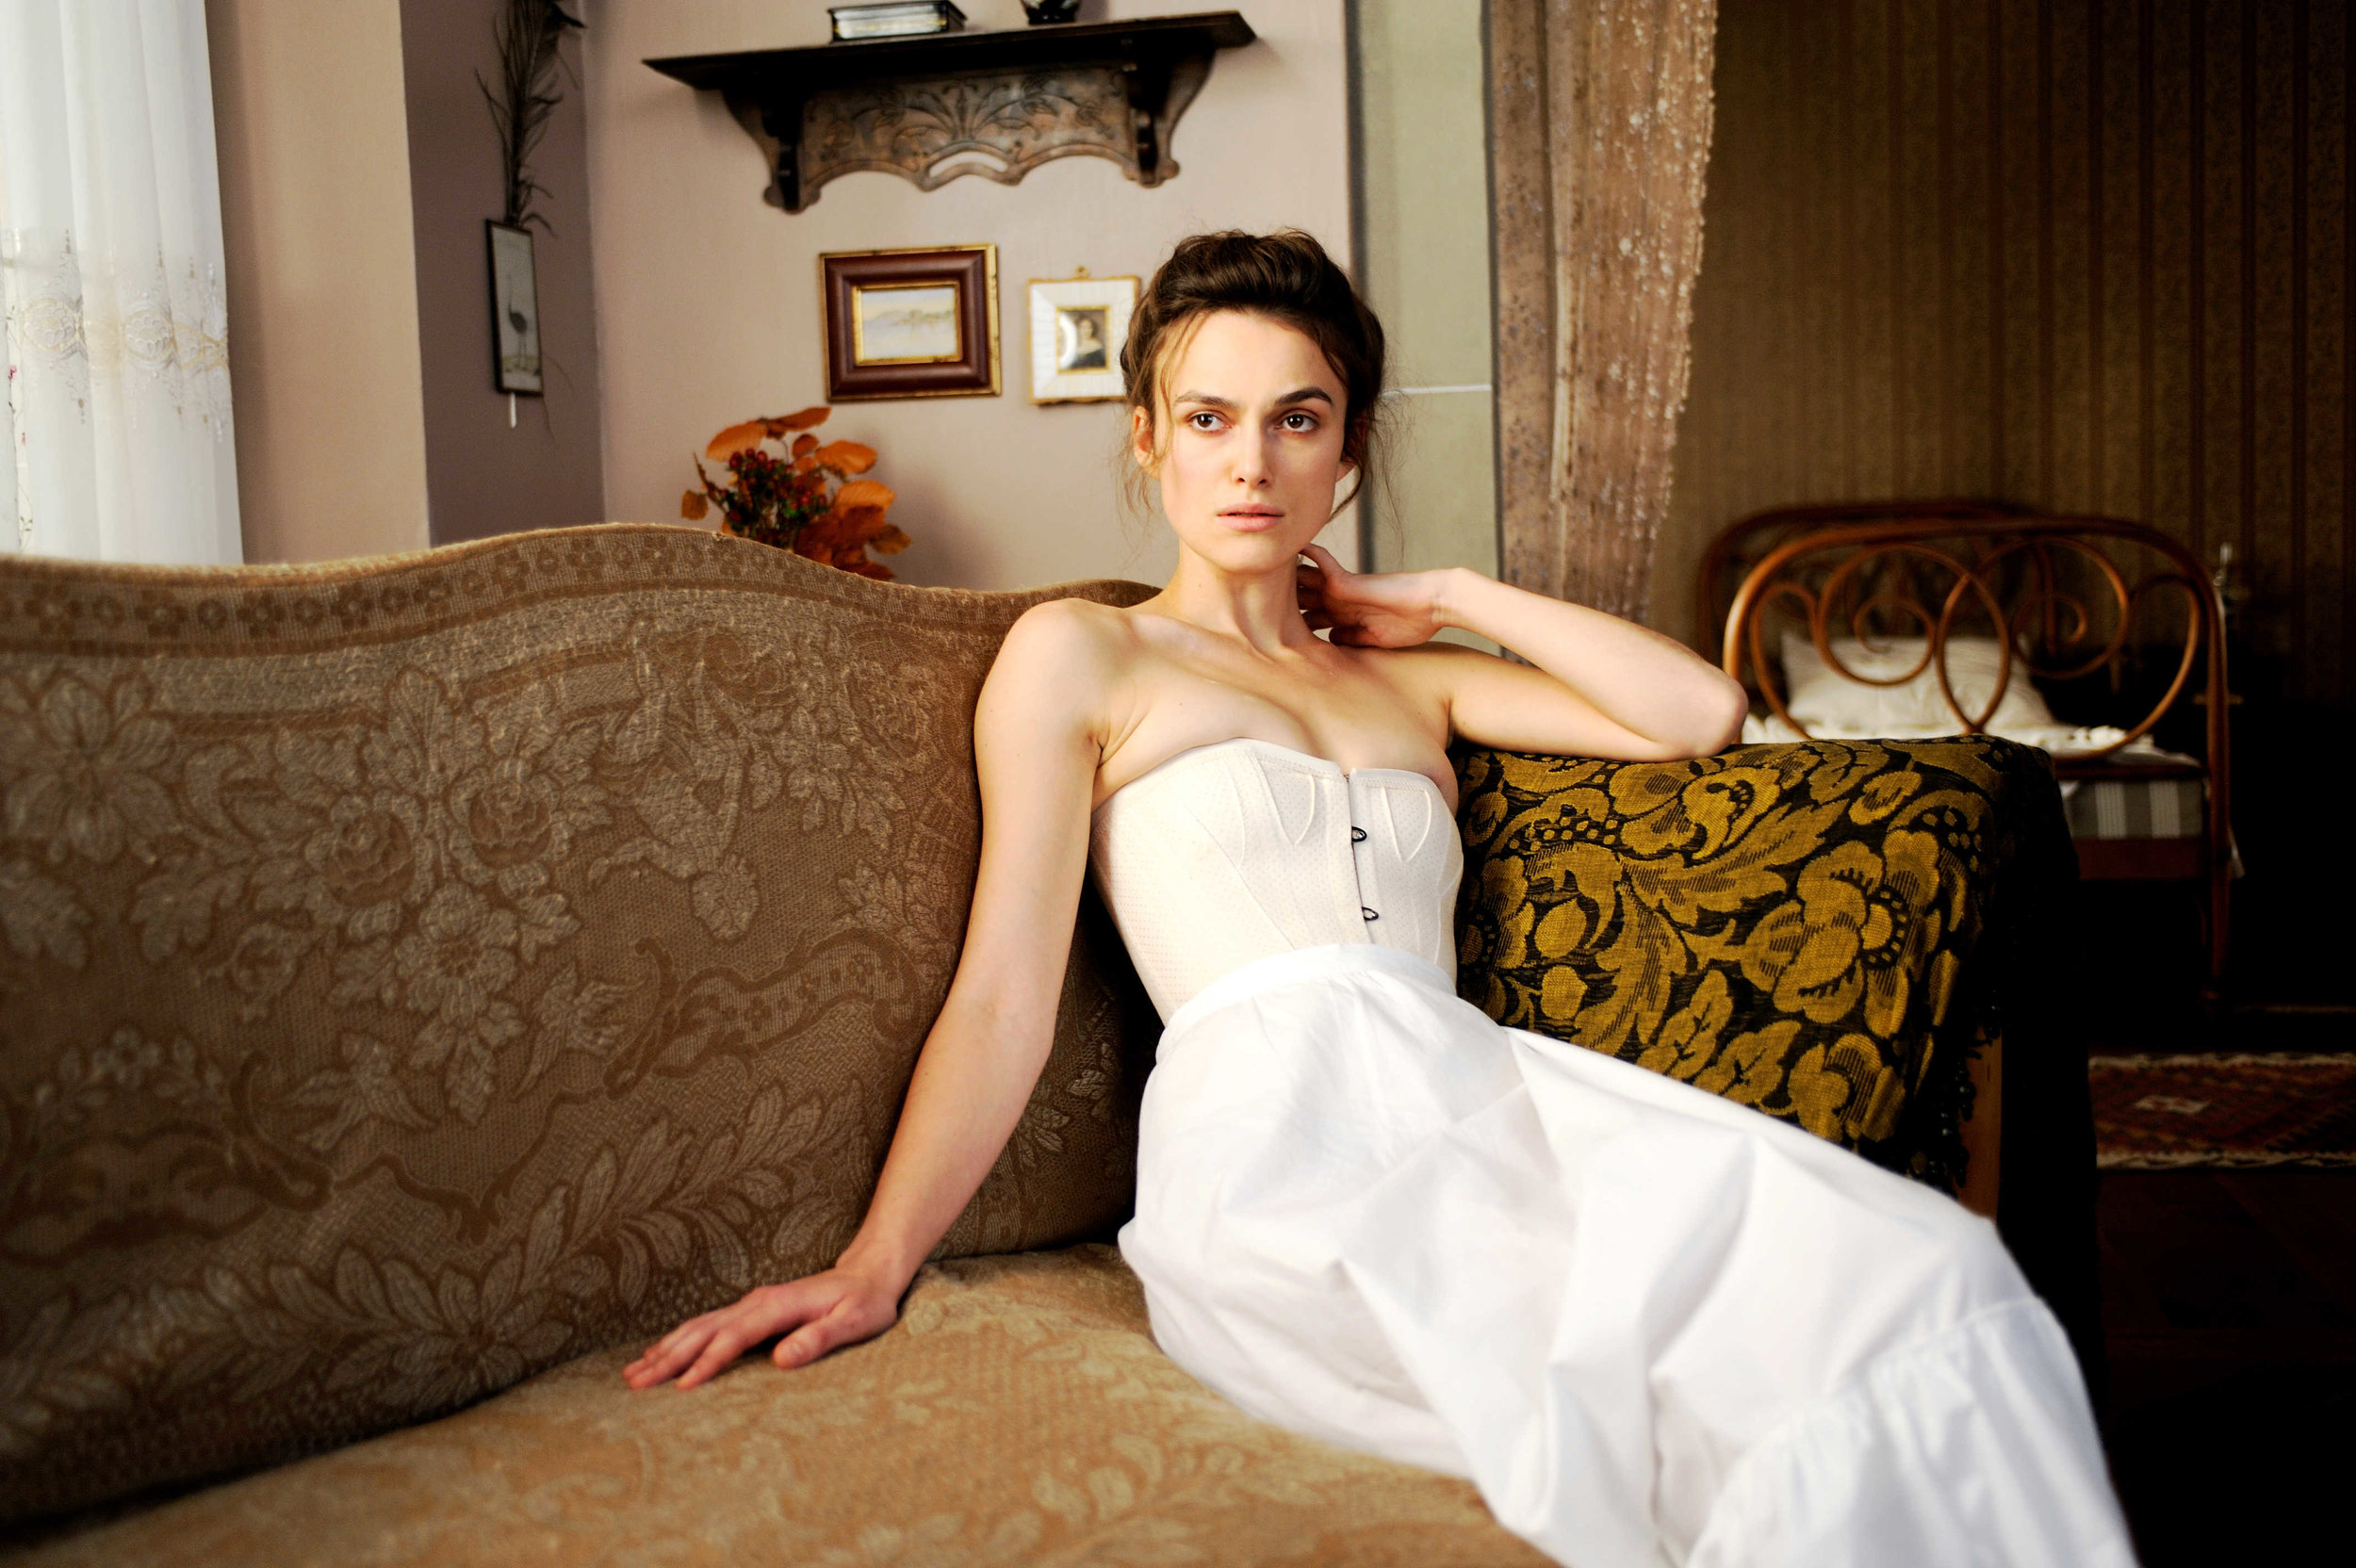 Keira Knightley stars in  A Dangerous Method (2011) as a patient of both Freud and Jung. The film was shot in German studios, with postproduction in Canada.